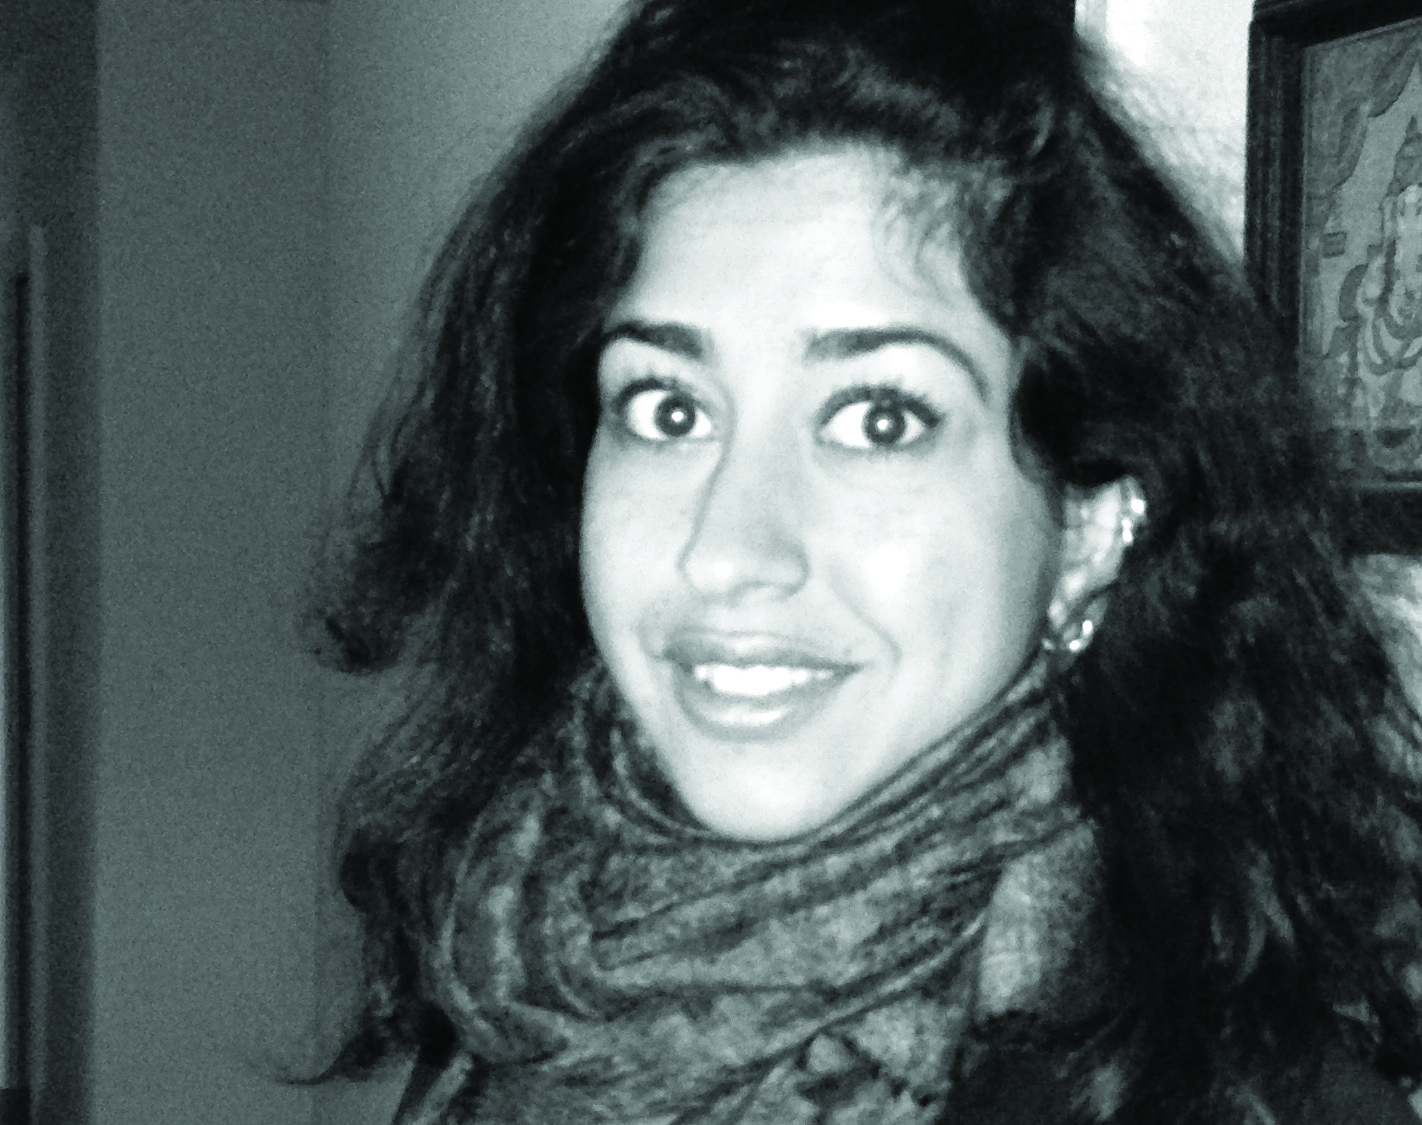 Radhika's second solo show to be hosted by Gallery Sarah in Oman